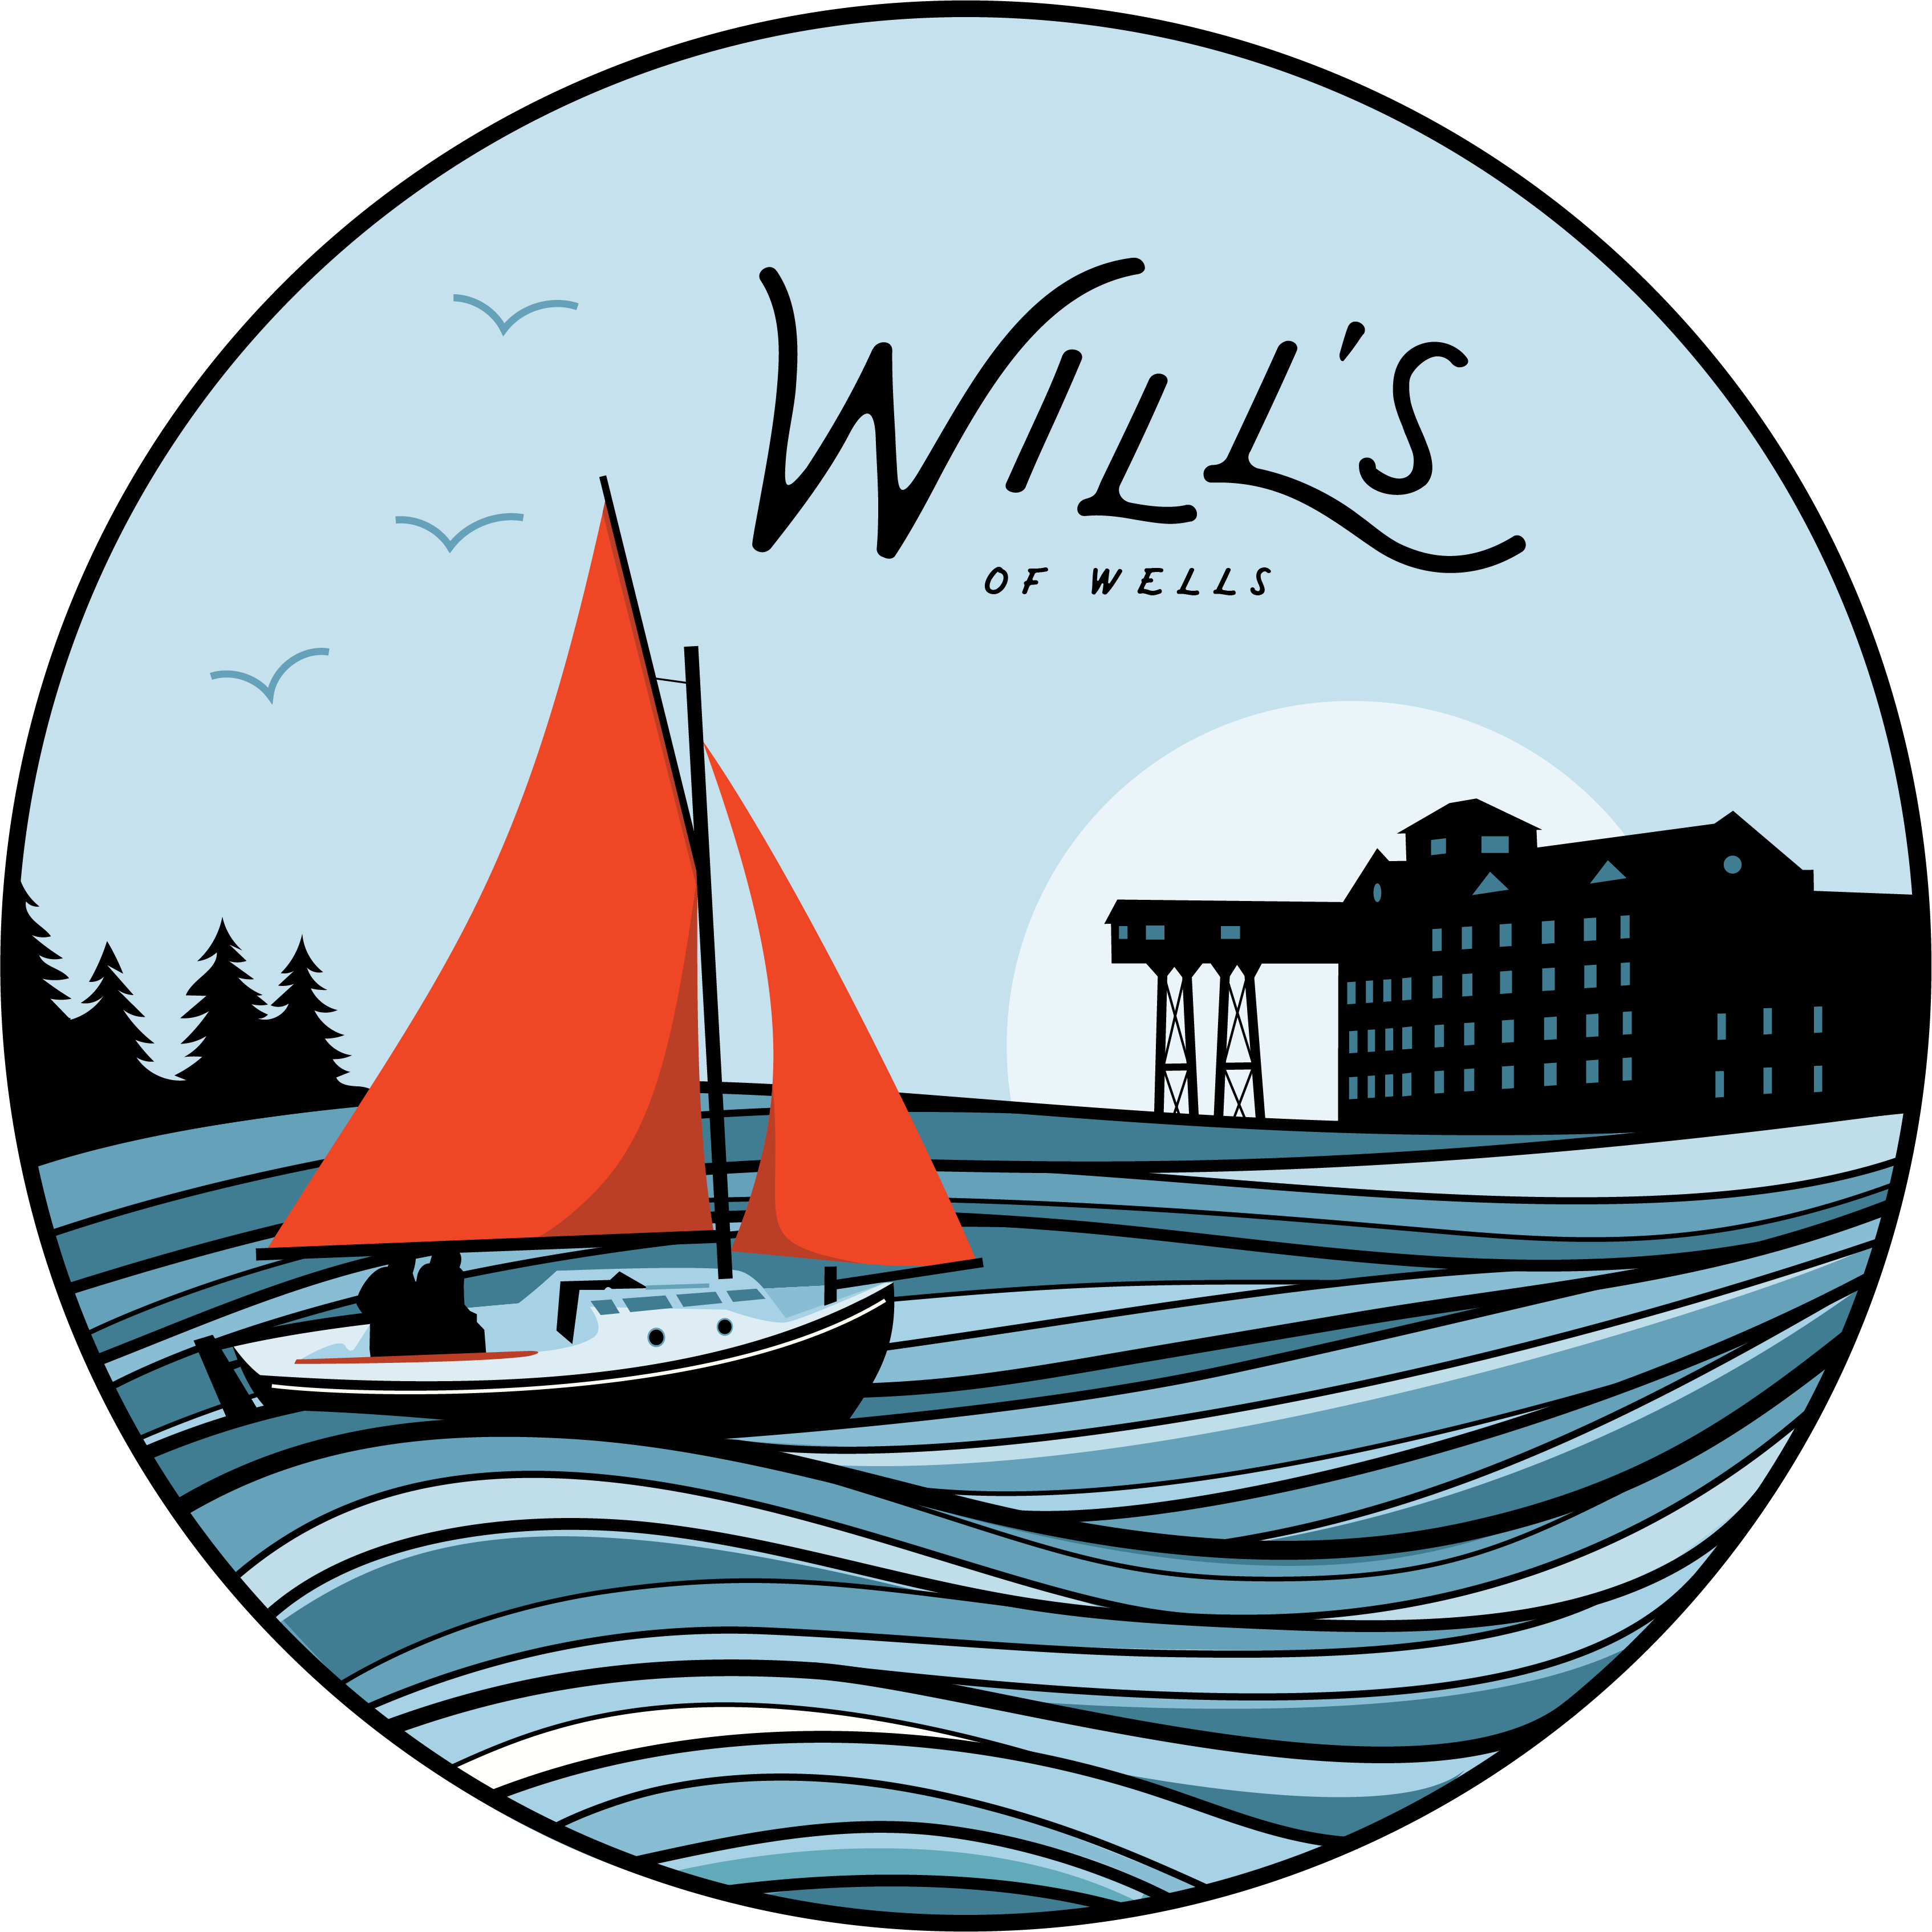 Will's of Wells